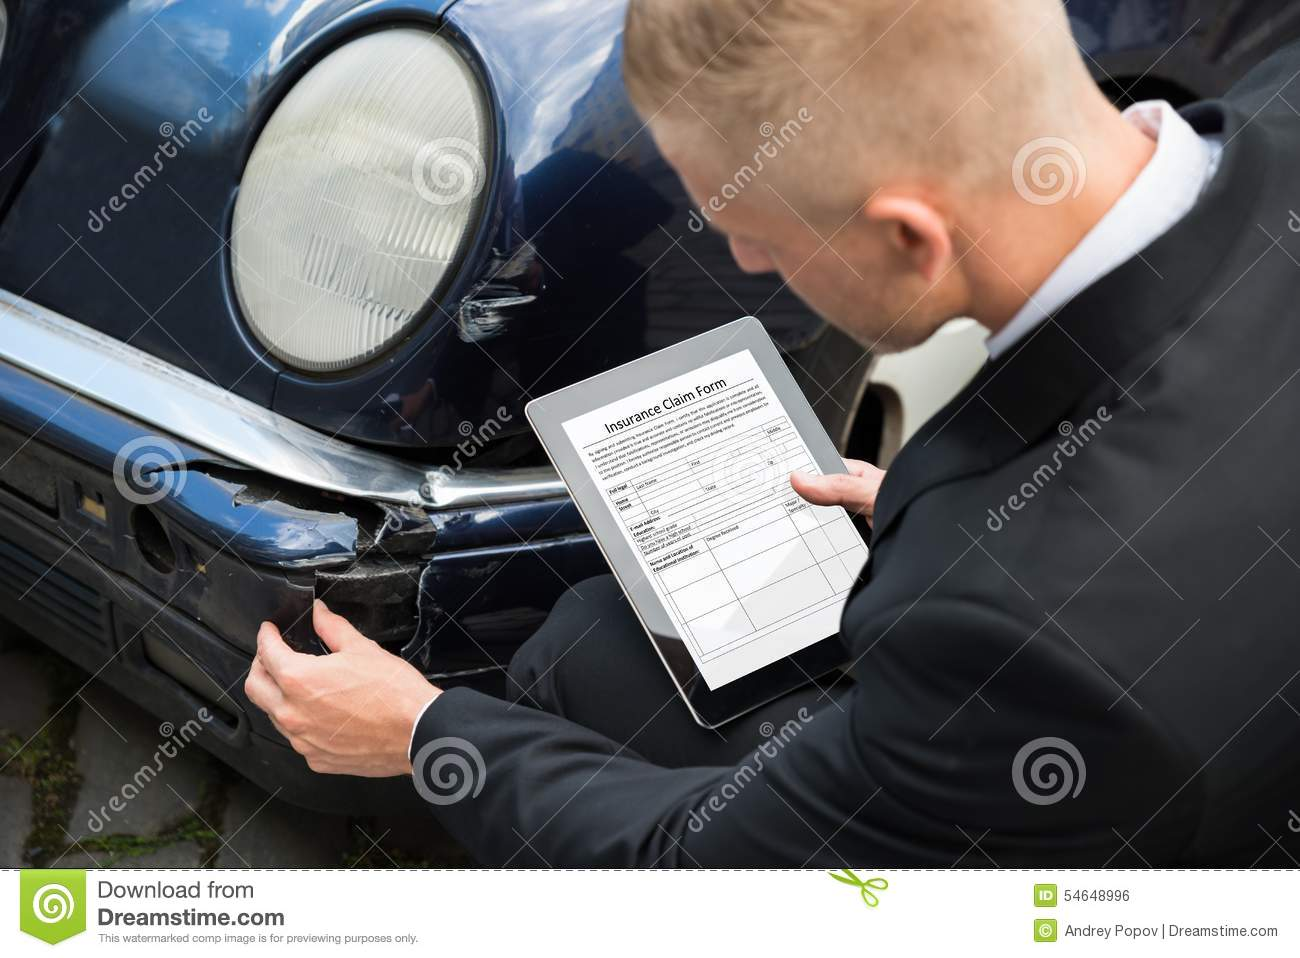 Man holding digital tablet examining damaged car